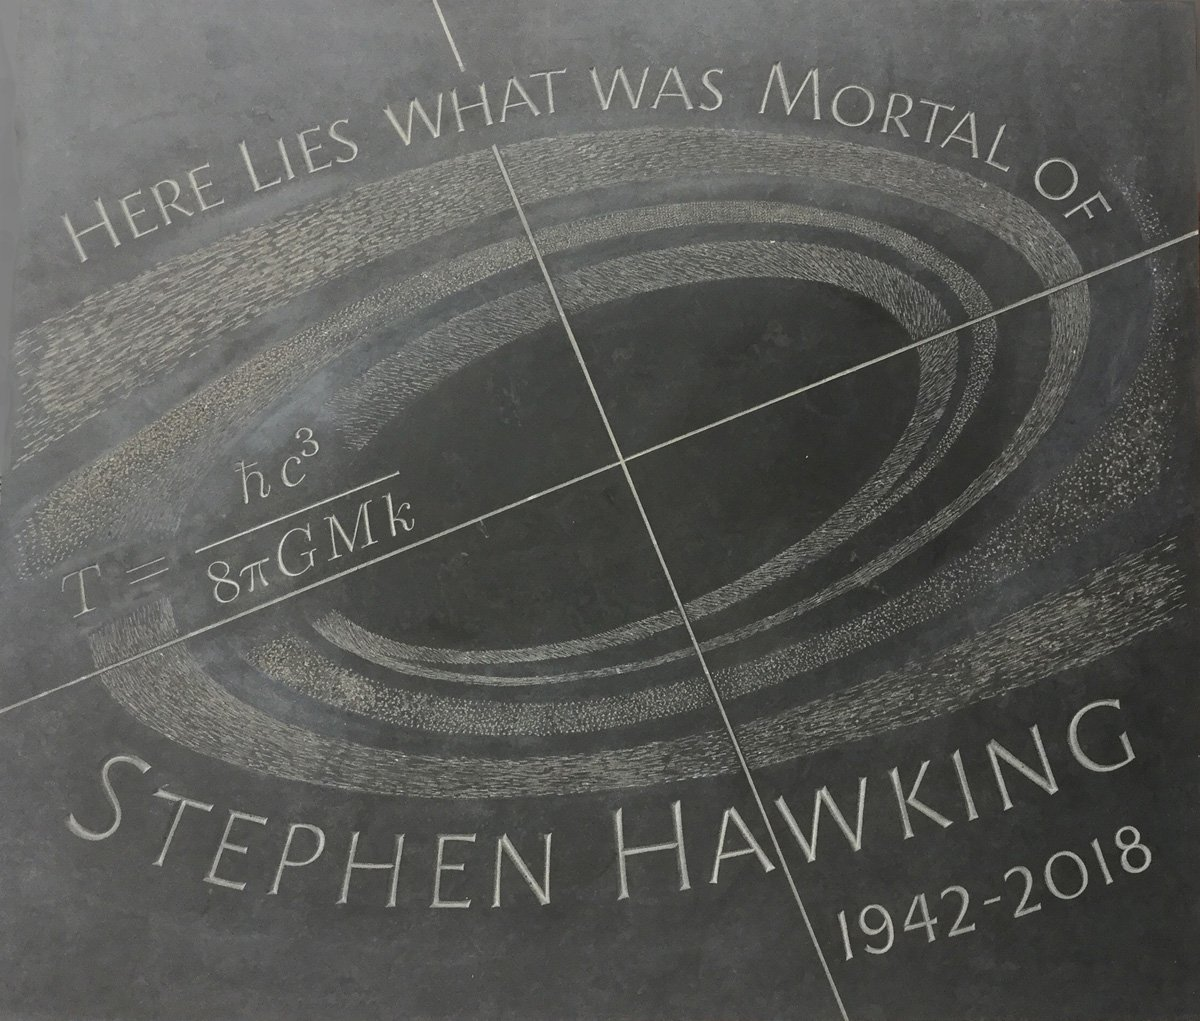 Hawking's memorial stone in Westminster Abbey which carries his most famous equation, describing the entropy of a black hole. Courtesy of the Science Museum.